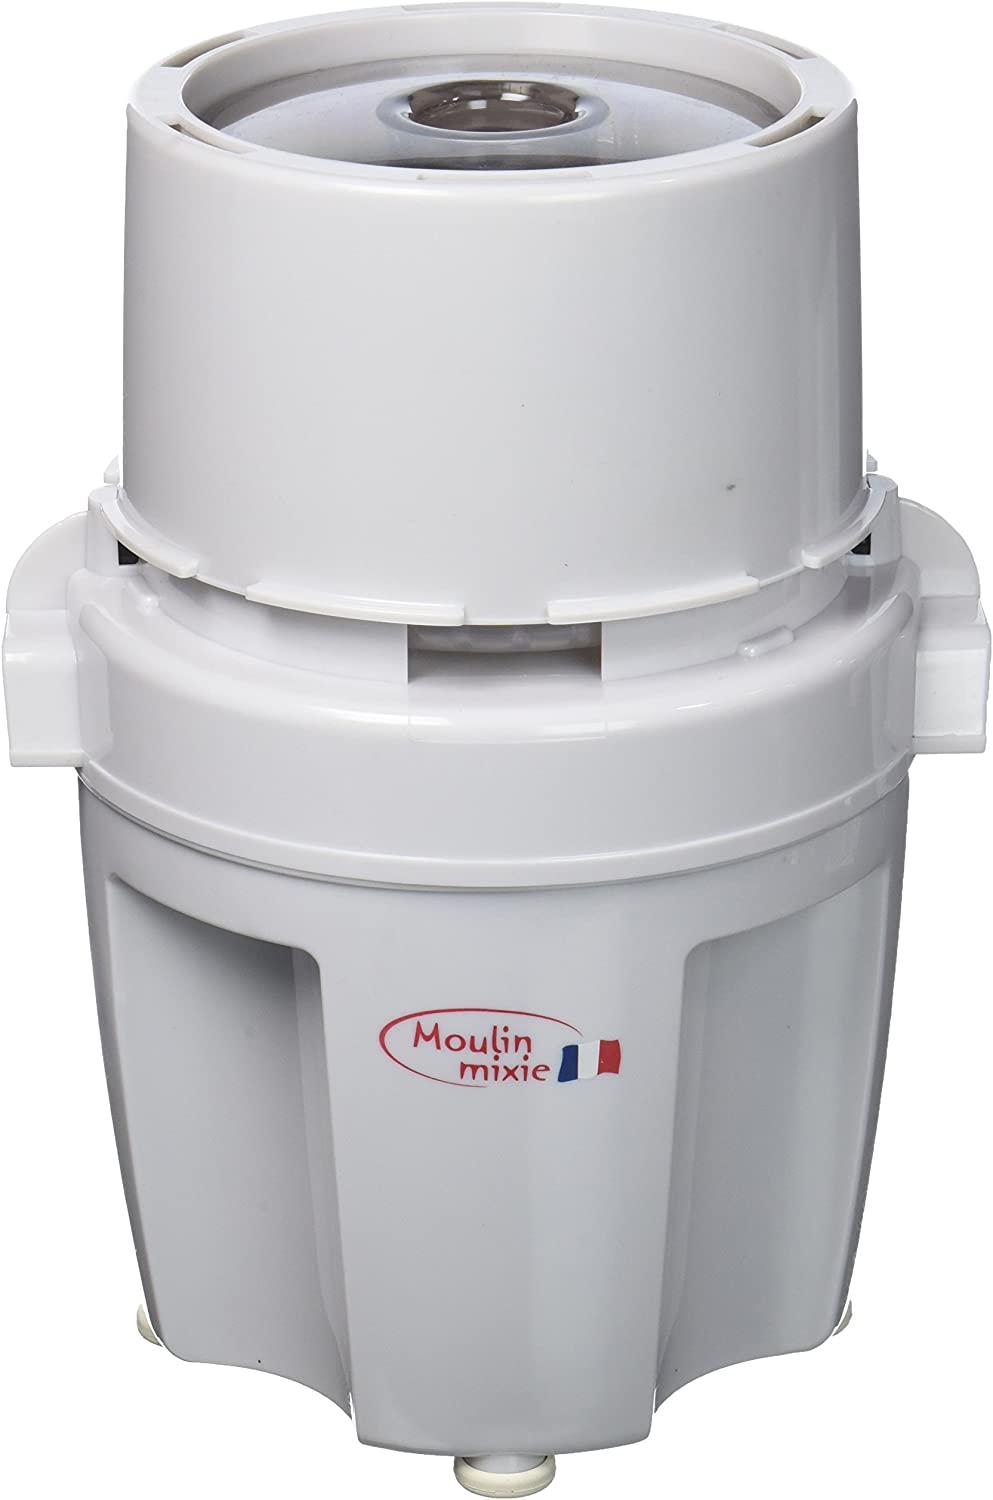 MOULIN TC 320 WET & DRY CHUTNEY GRINDER, White